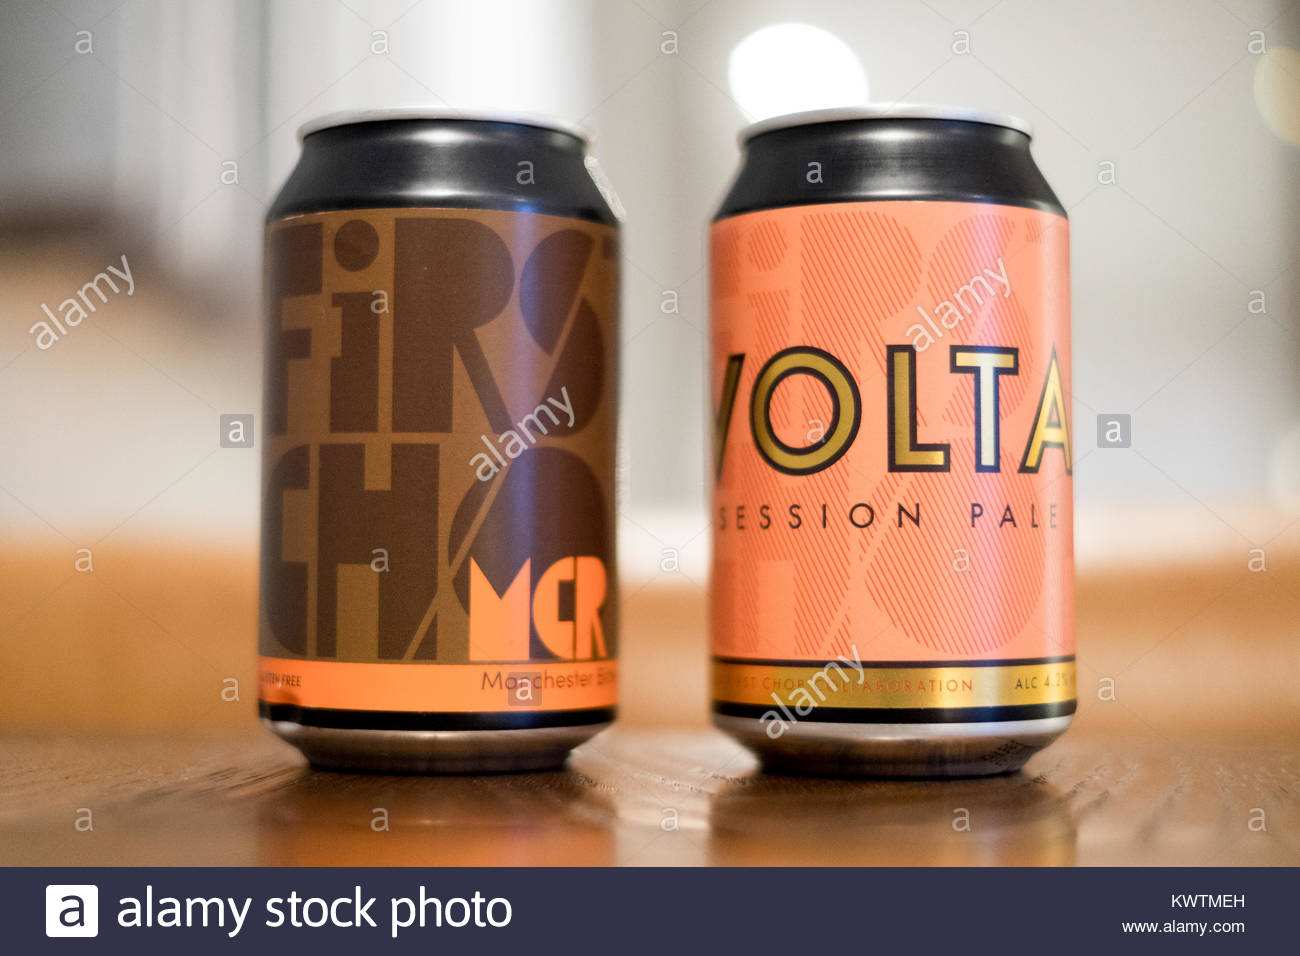 Cans of First Chop and Volta beers, brewed in Manchester - Stock Image